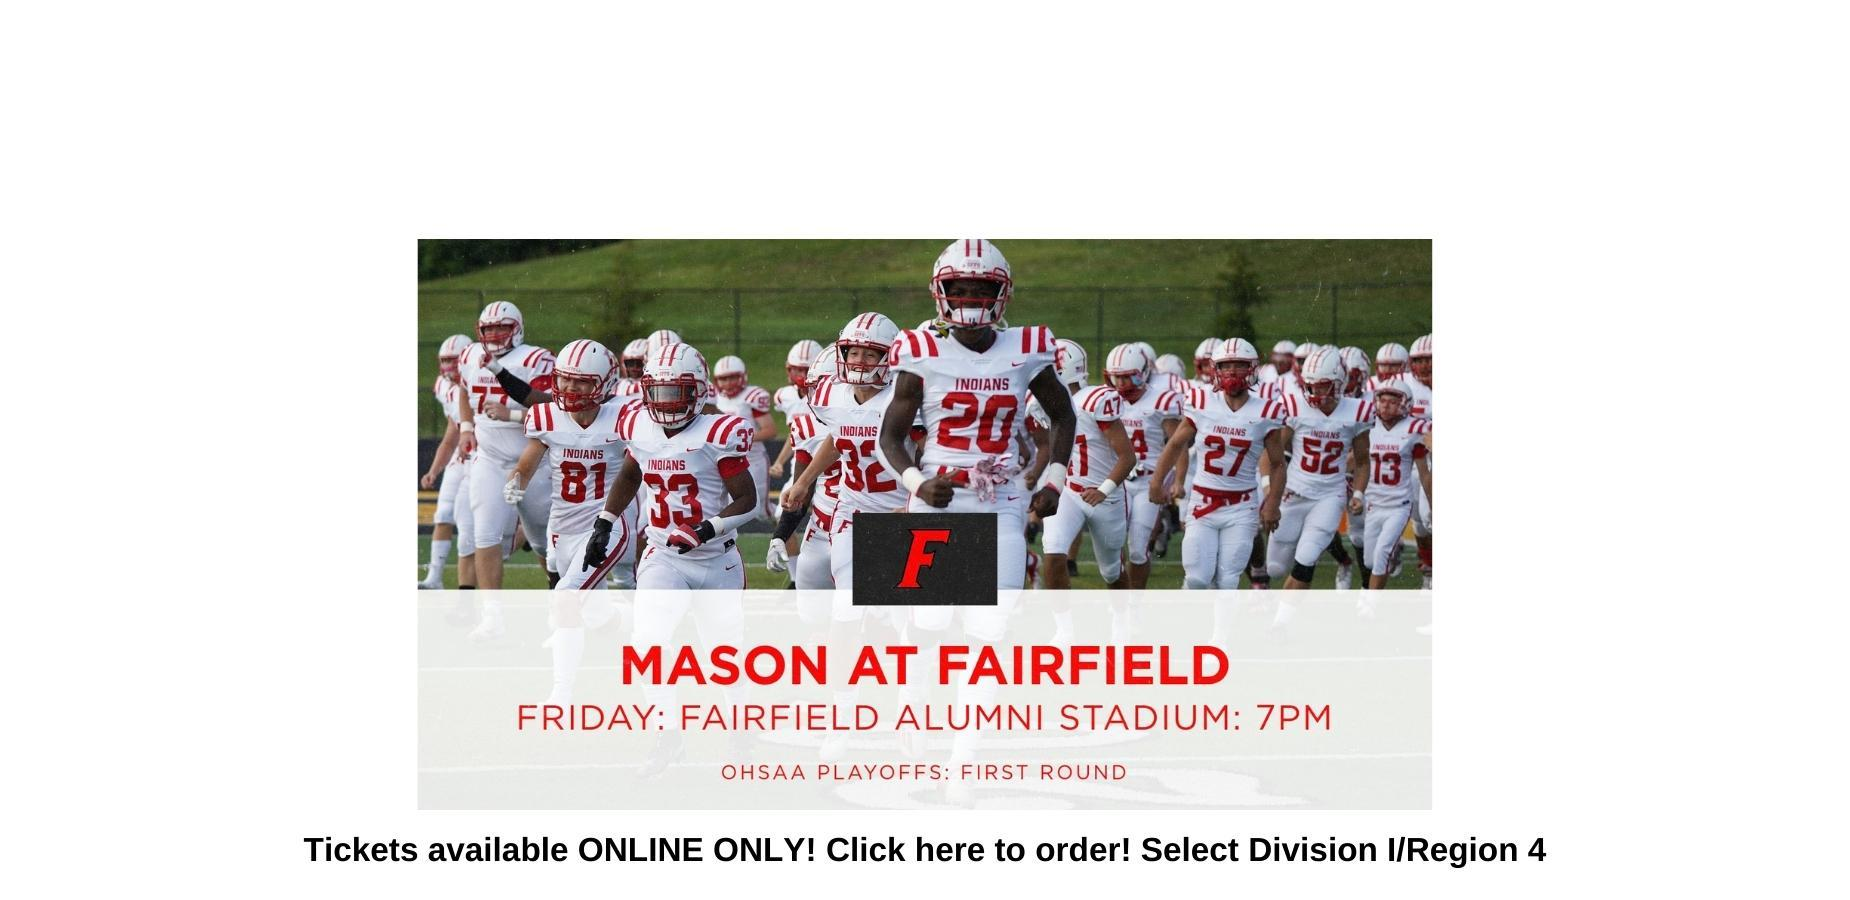 This is an image of the football team in an announcement about how to order tickets online. Fans can click on this image to order ticket.